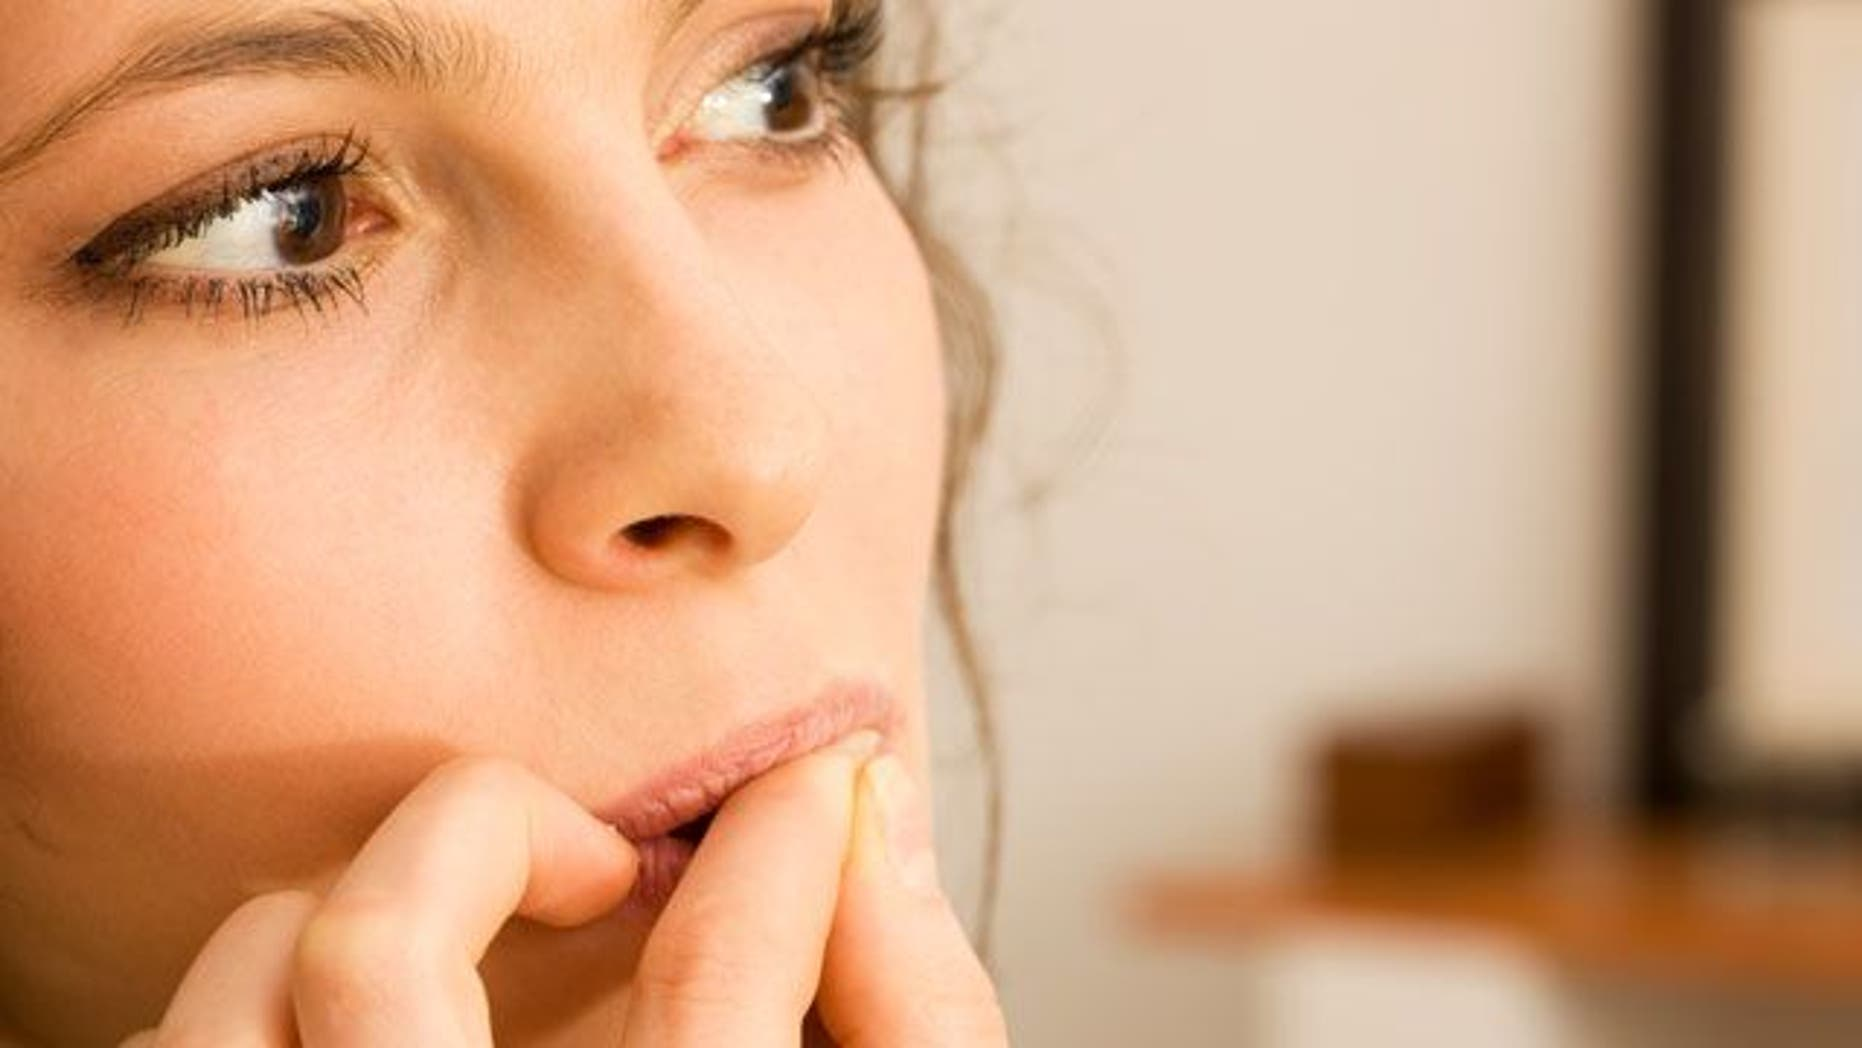 10 Common Habits That Hurt Your Skin